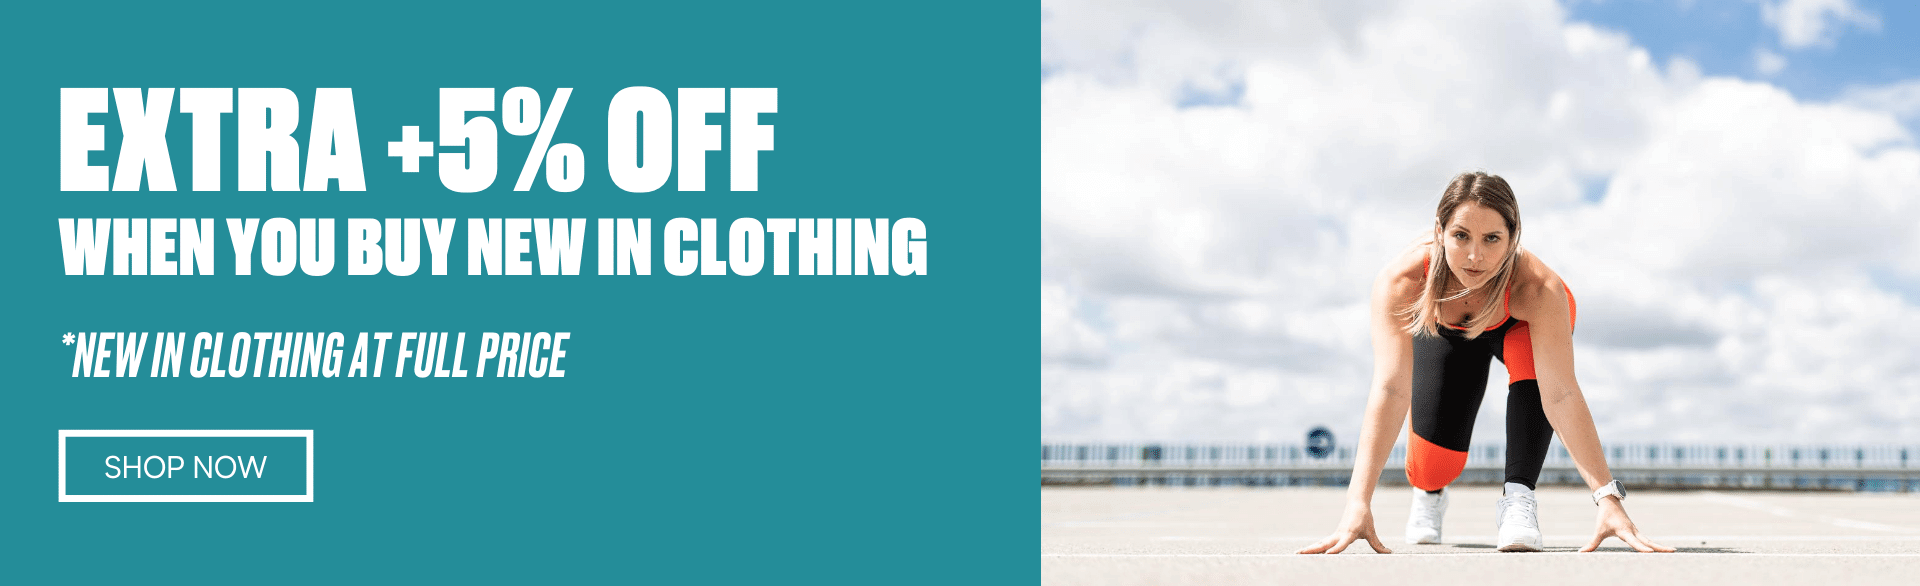 Extra +5% off your order when you buy new in Clothing. Clothing at full price.